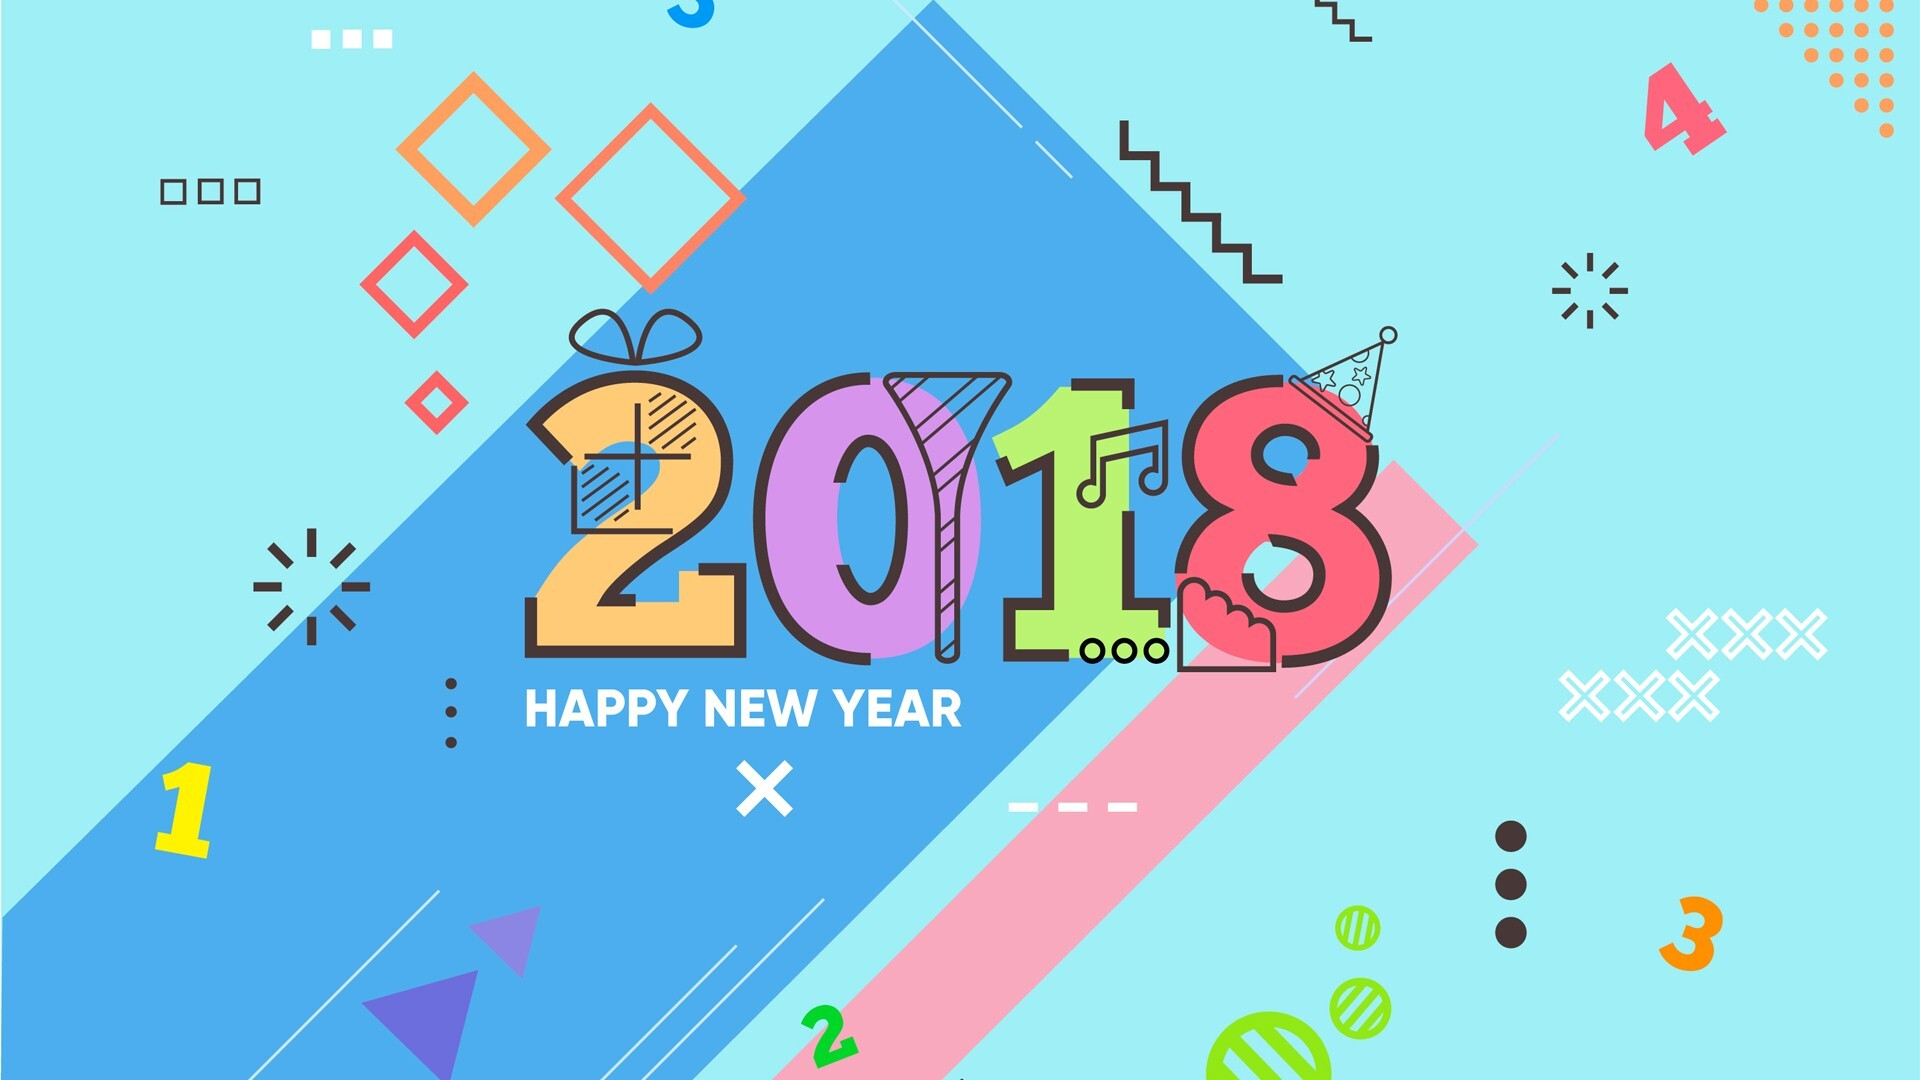 new year 2018 wallpaper with math theme